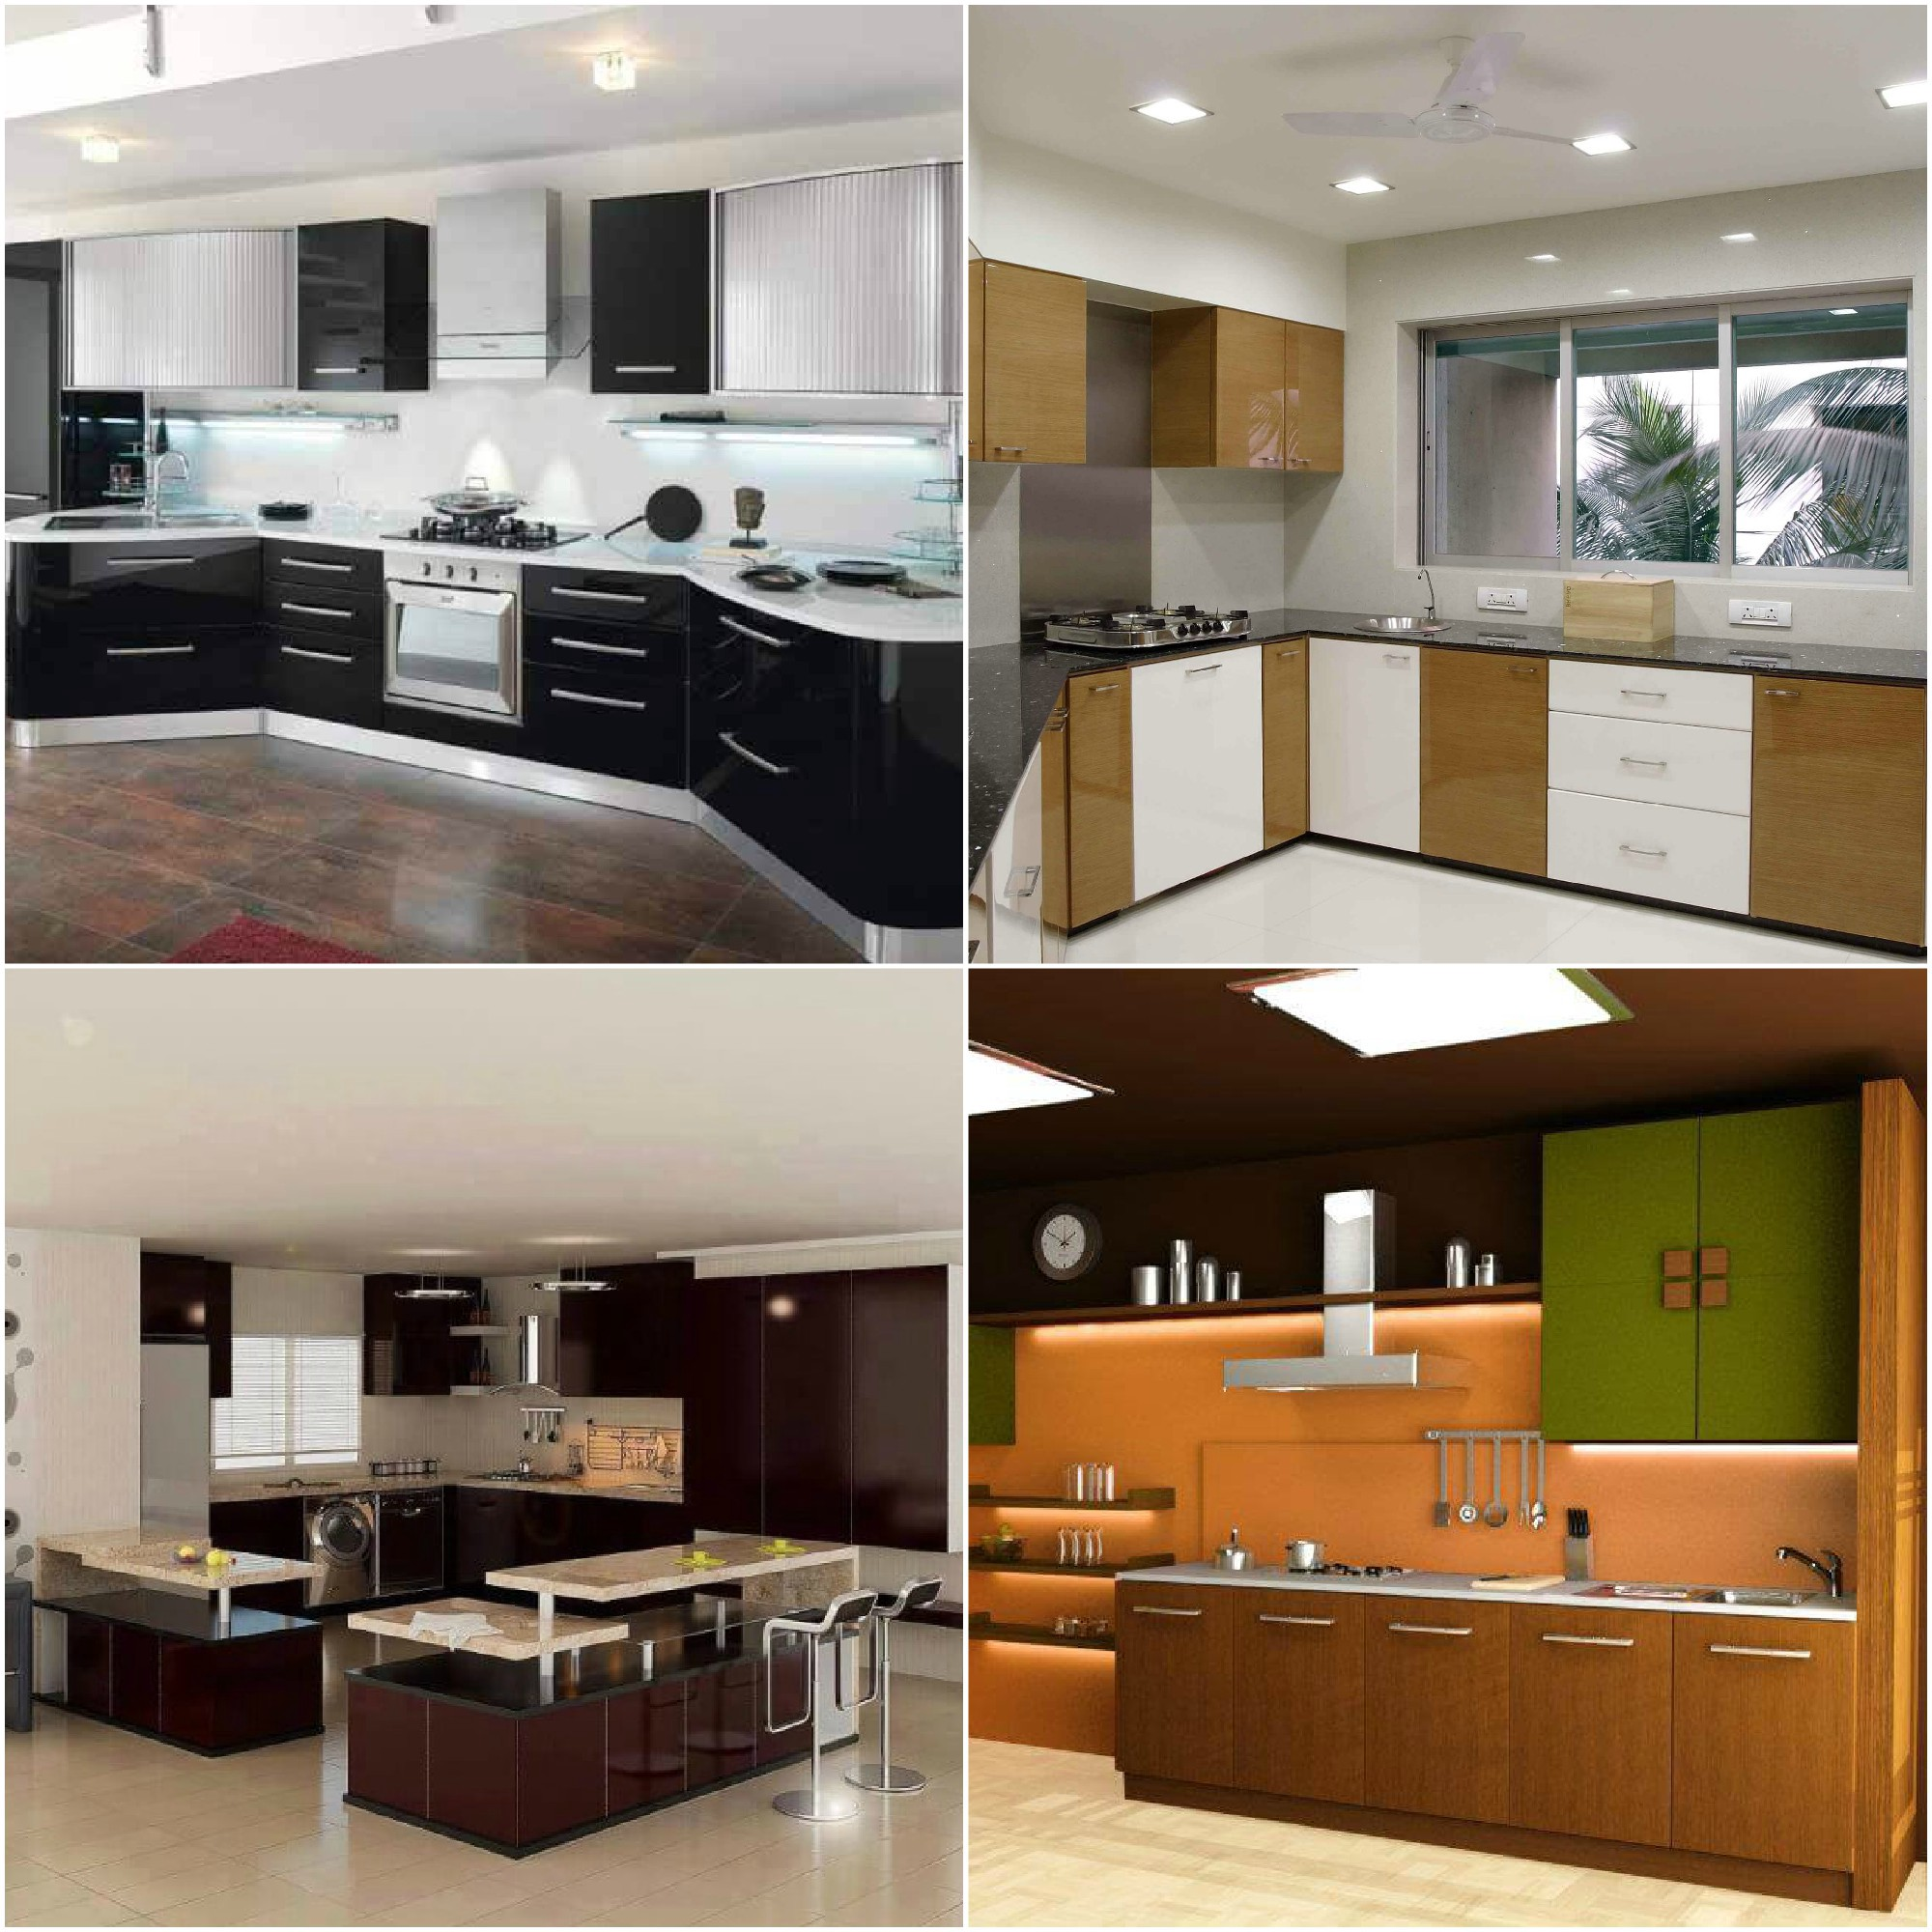 23 Modular Kitchen Design Ideas For Indian Homes By Architectures Ideas Medium